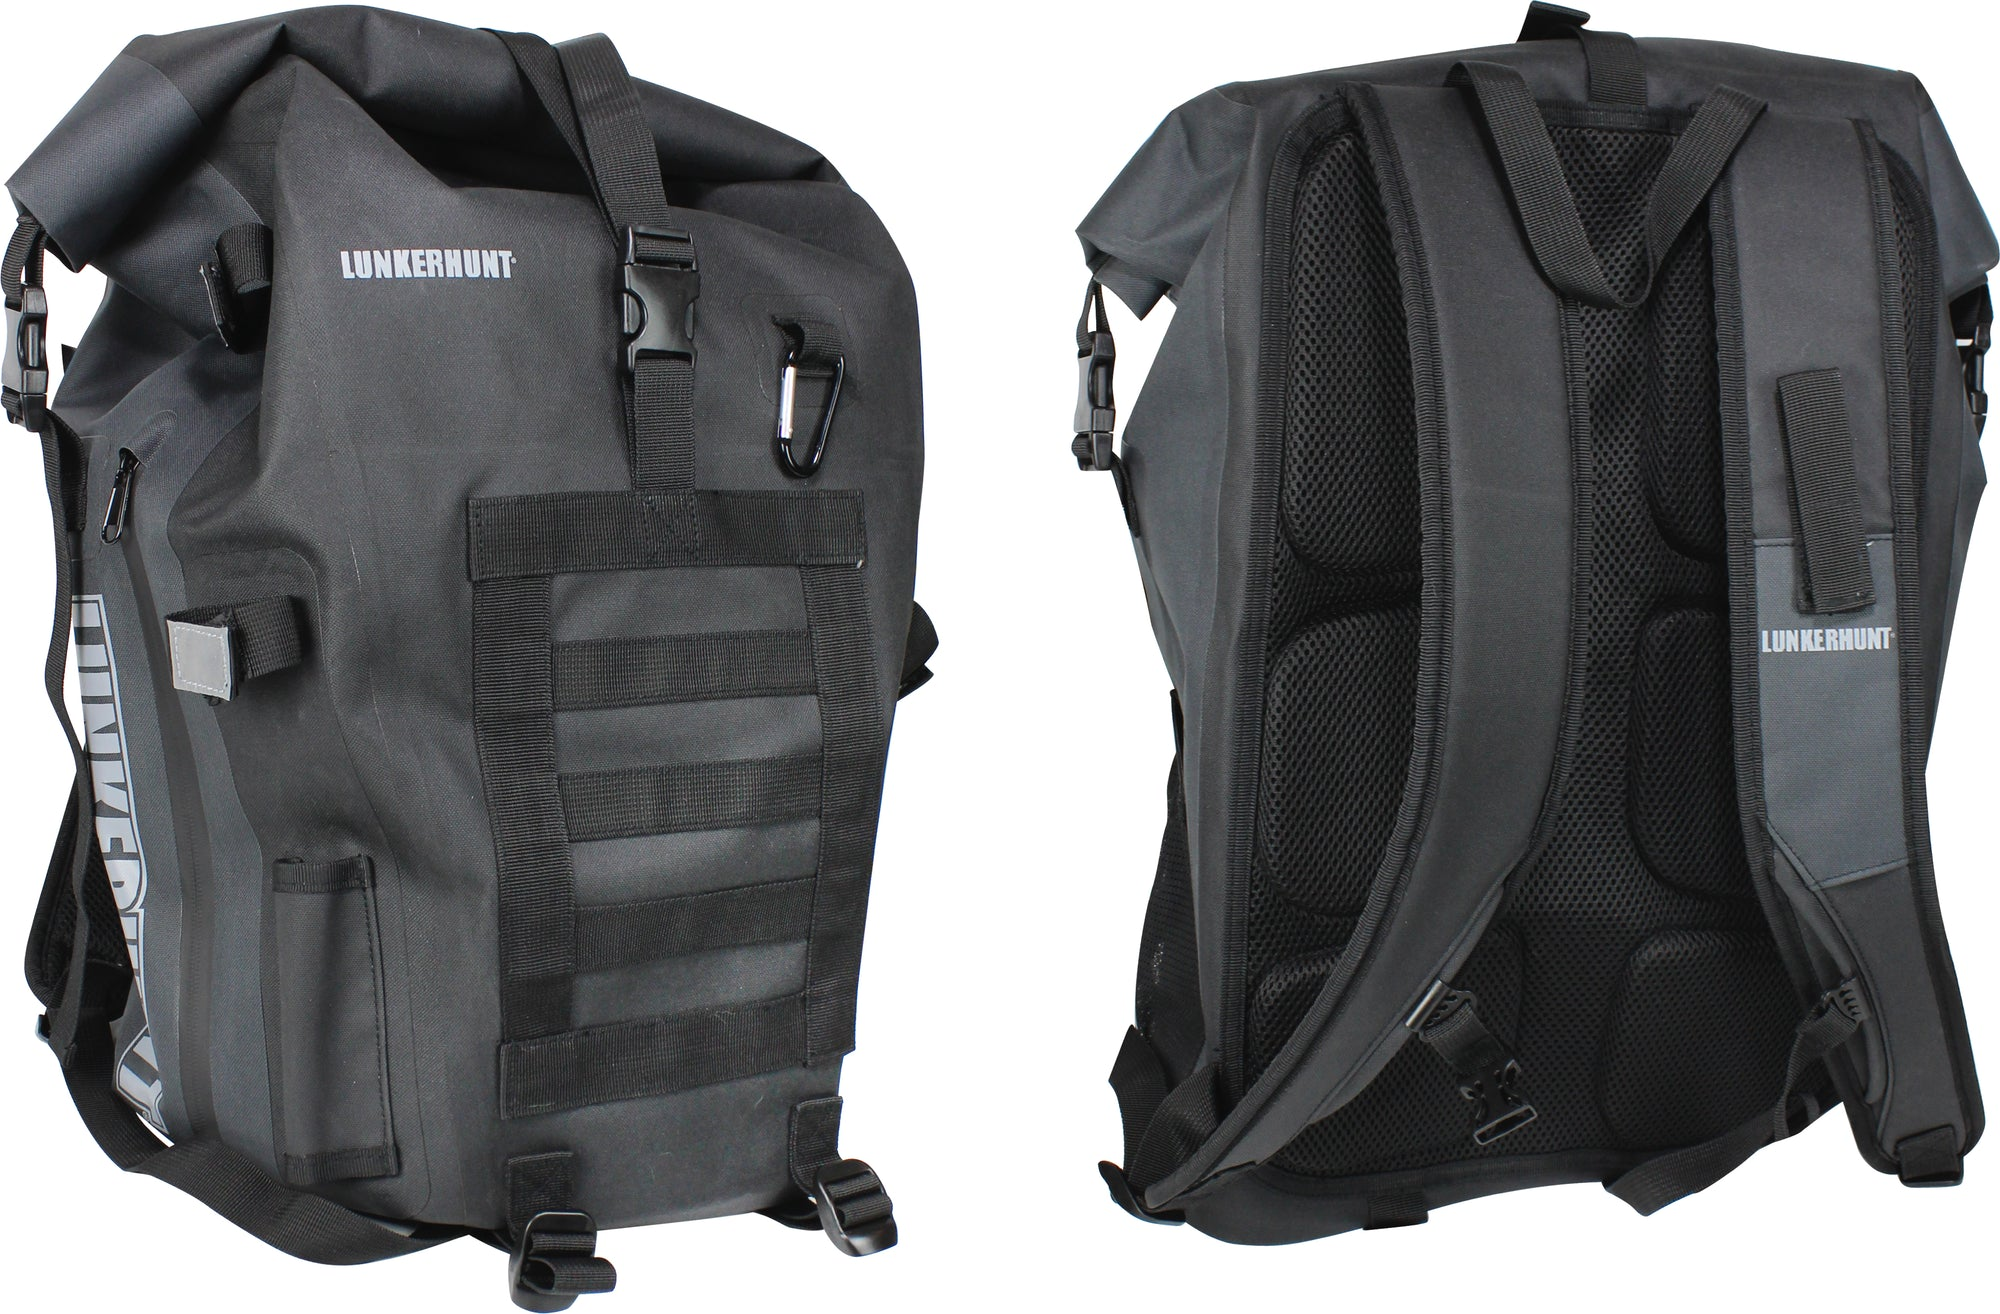 LTS Avid Backpack